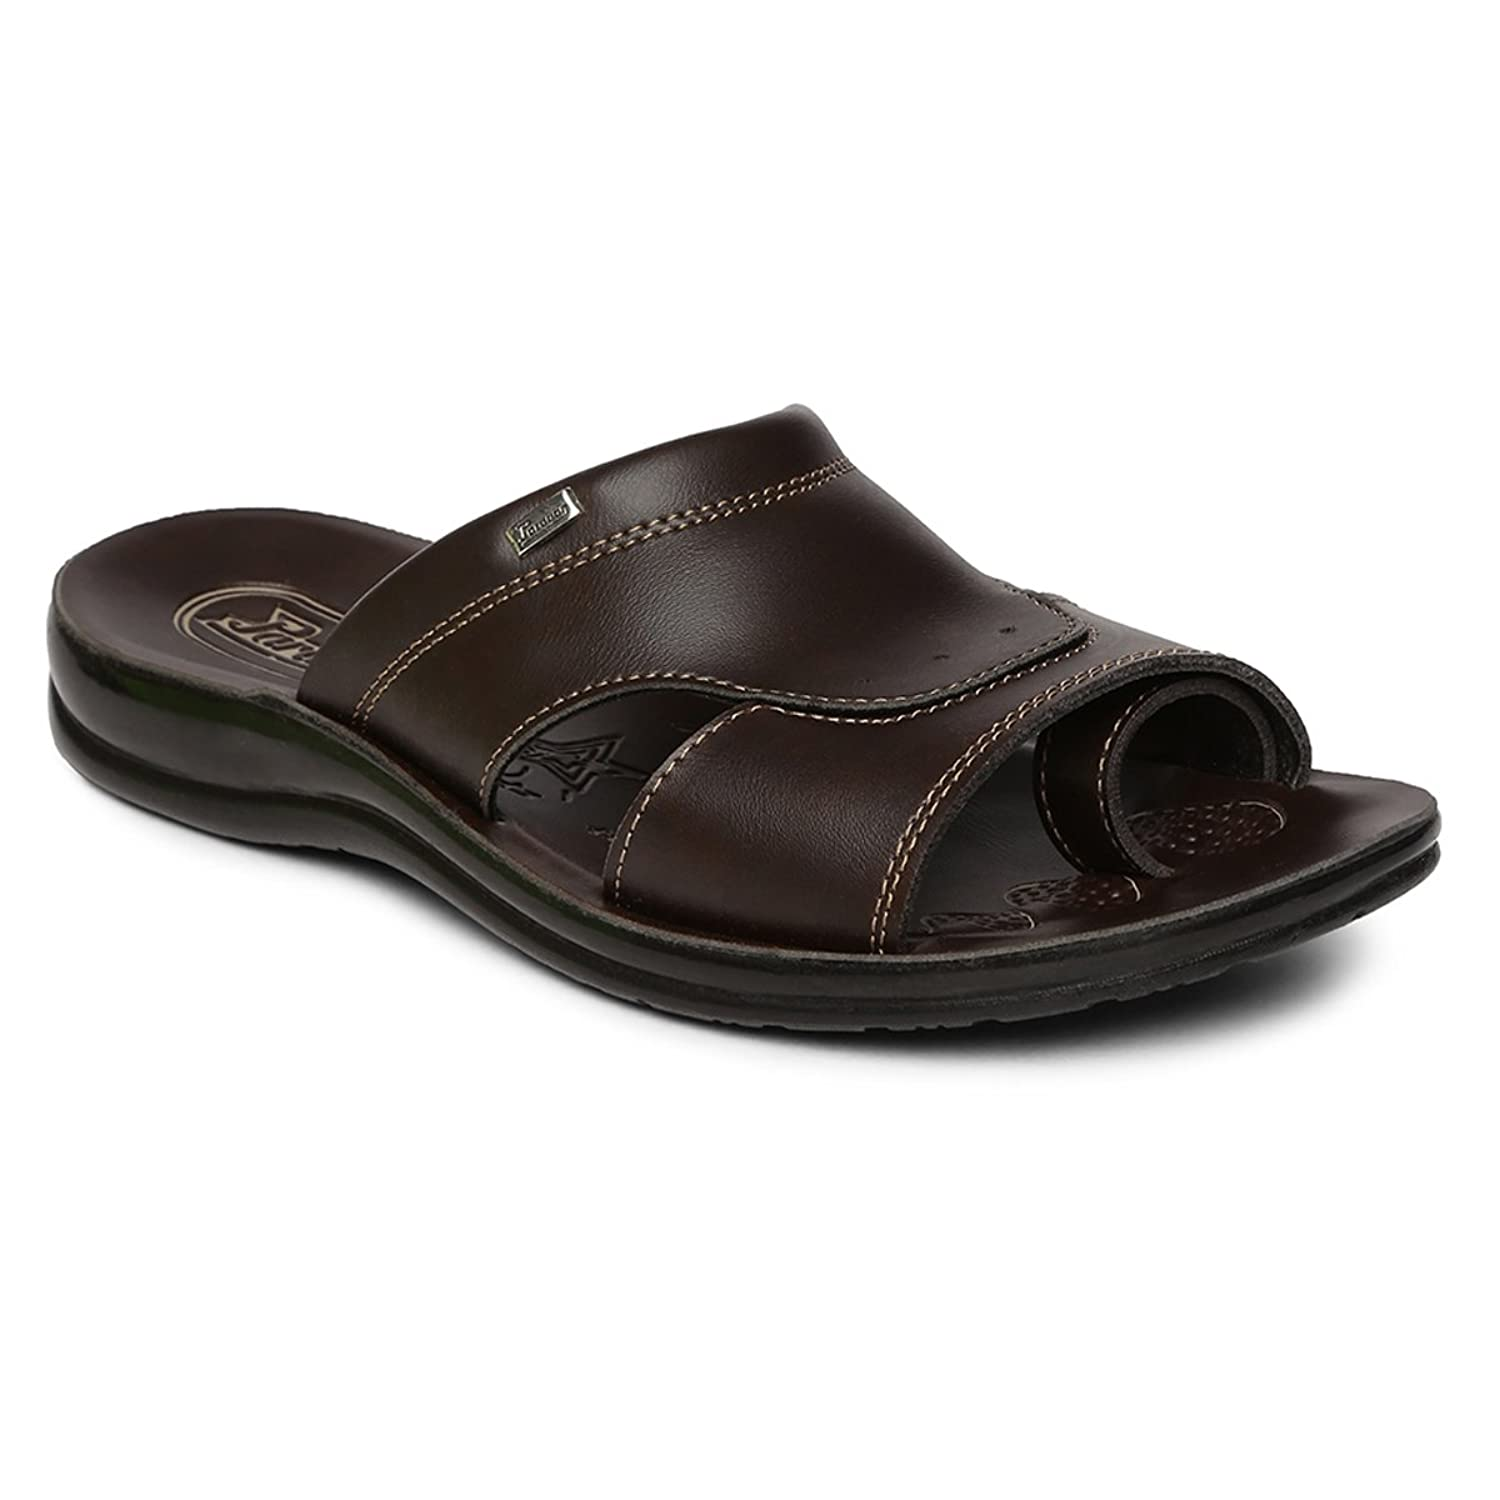 PARAGON Flip-Flops Chappals Sandals Shoes @ Flat 50% Discount Starts From Rs.110